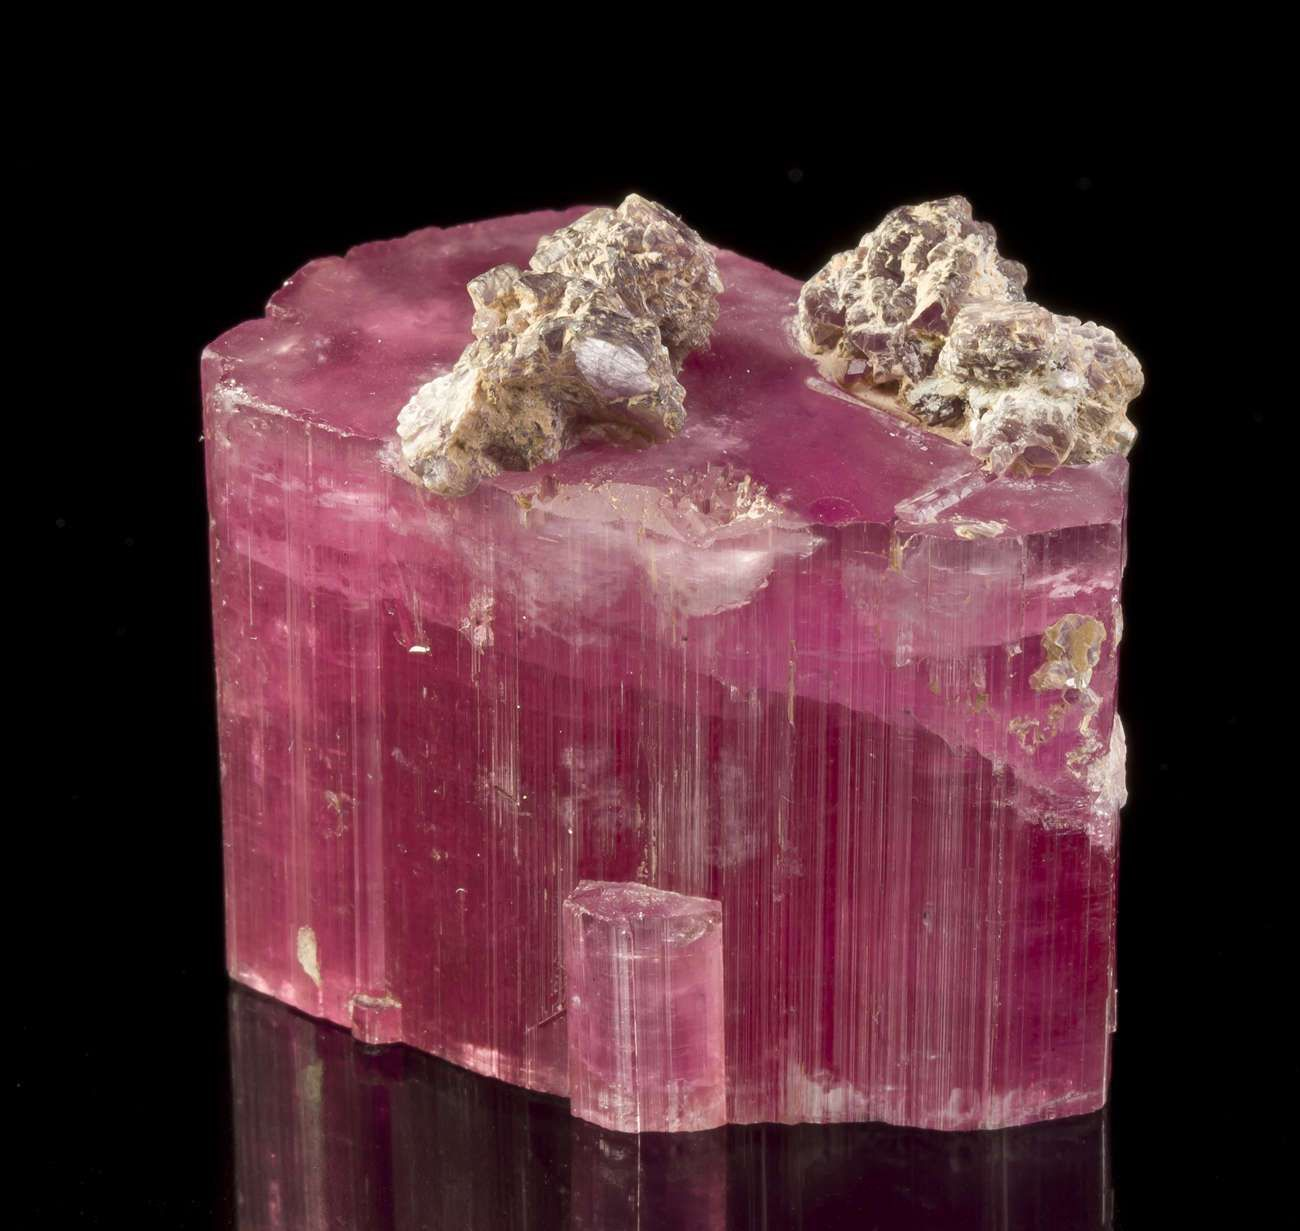 Tourmaline with Lepidolite - Tourmaline Queen Mine, Pala, California, USA. Very seldom do we see fine crystals of this ultra-hot-pink color saturation turn up again on the market, and then only out of old collections or museum deaccessions-